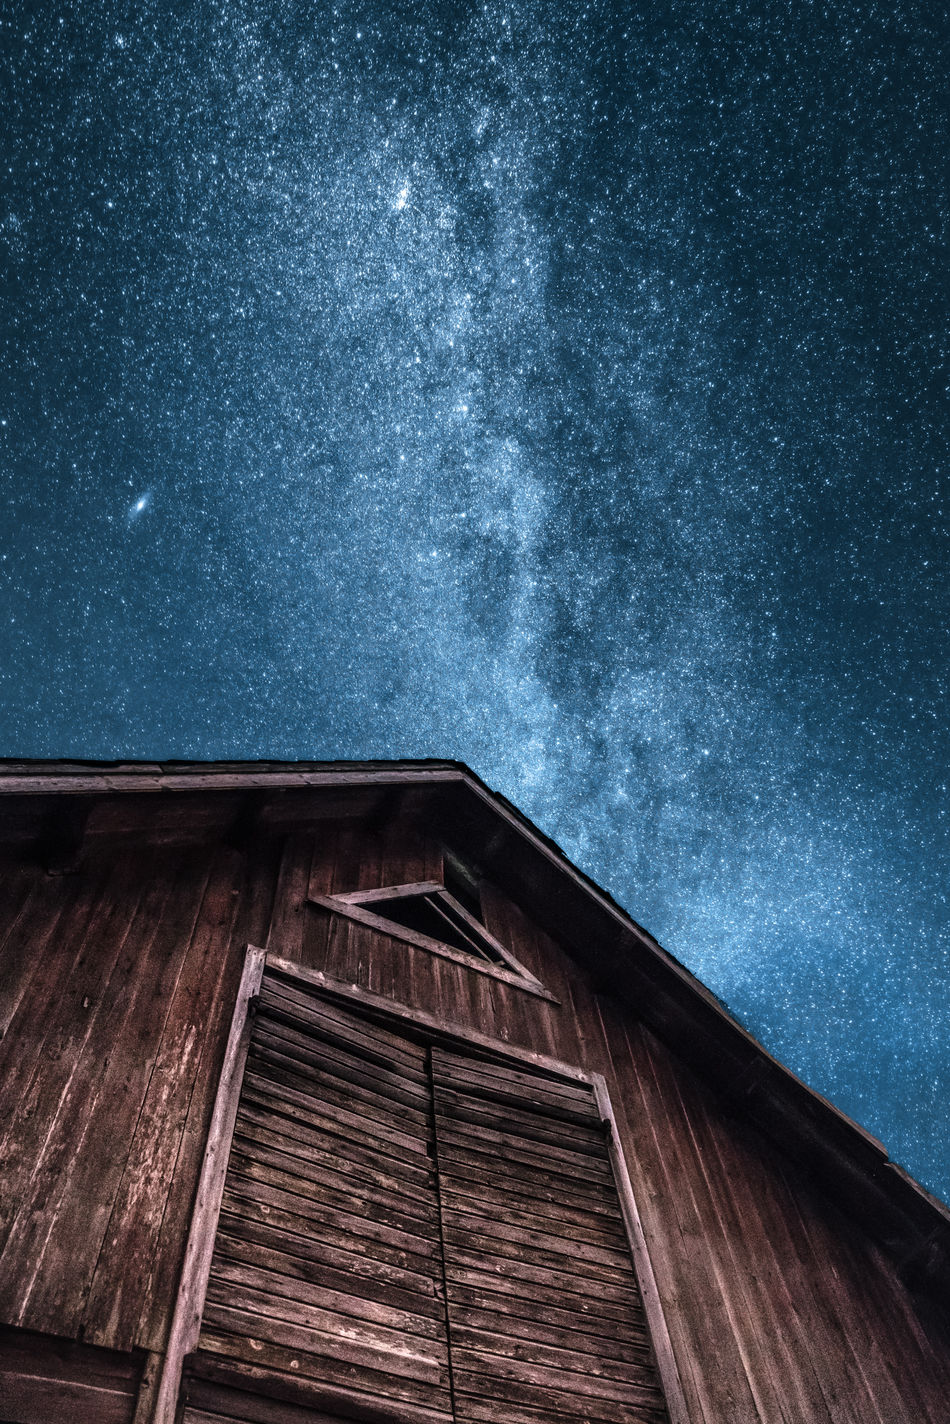 """""""Up"""". I came across a barn that seemed to want to remind us where we came from in the first place. Architecture Astronomy Awe Beauty In Nature Blue Built Structure Clear Sky Constellation Galaxy Low Angle View Milky Way Nature Night No People Outdoors Red Sky Småland Space Space And Astronomy Star - Space Star Field Sweden Wood - Material"""